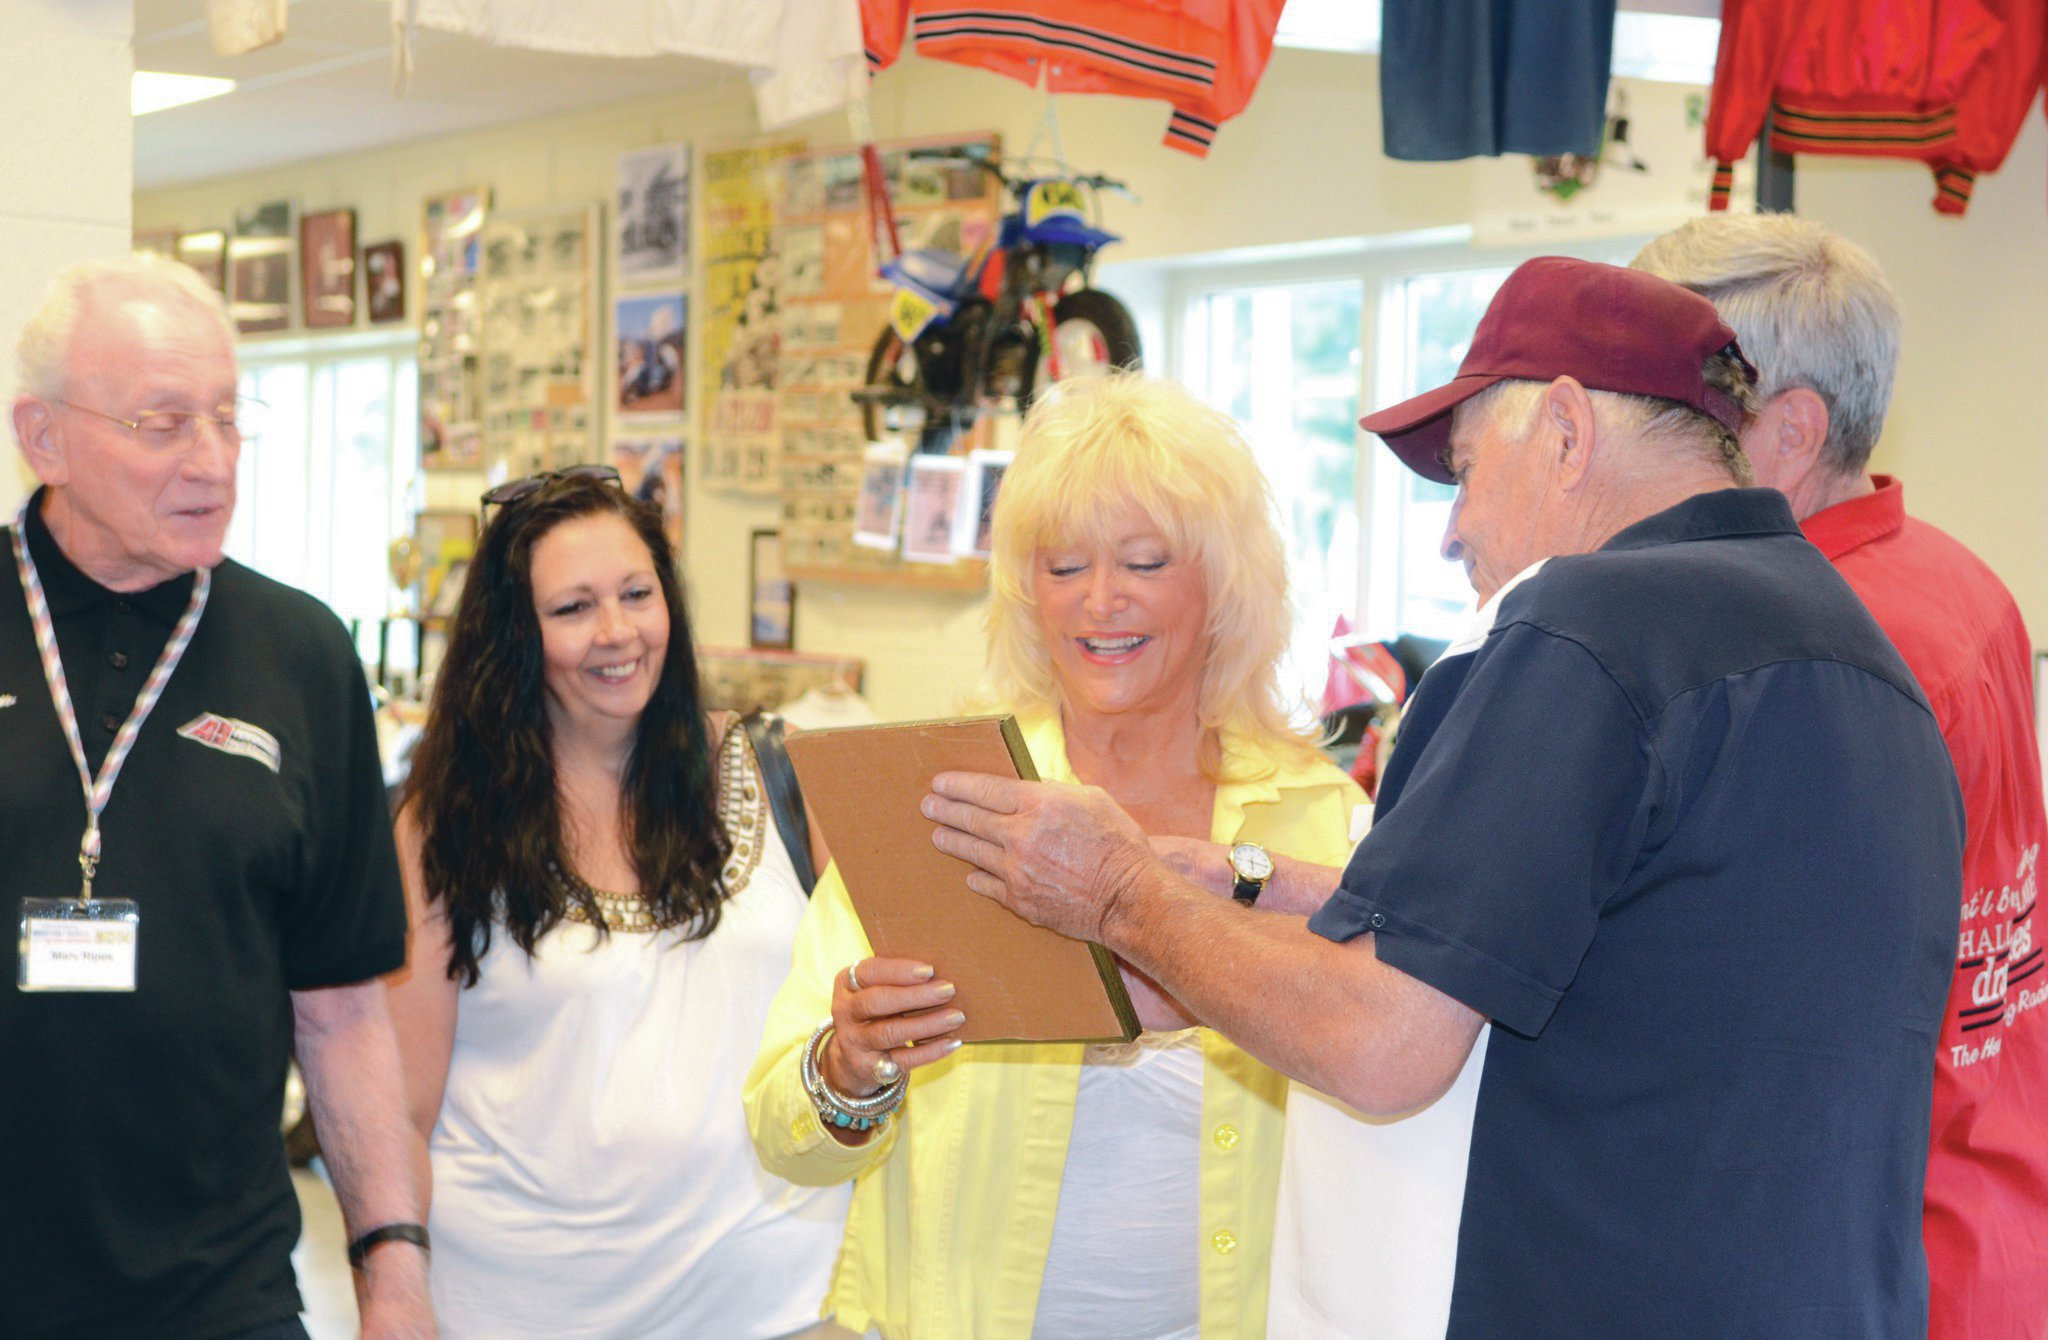 Linda Vaughn visited the EMMR during the Reunion. She's laughing at a recently uncovered photo of the late Tim Richmond pouring beer down her shirt. From left: A1 Transmission's Marv Ripes, Linda's assistant, Linda, Drag Times publisher Jack Redd, and tour guide and Sprint Car racer Lynn Paxton.